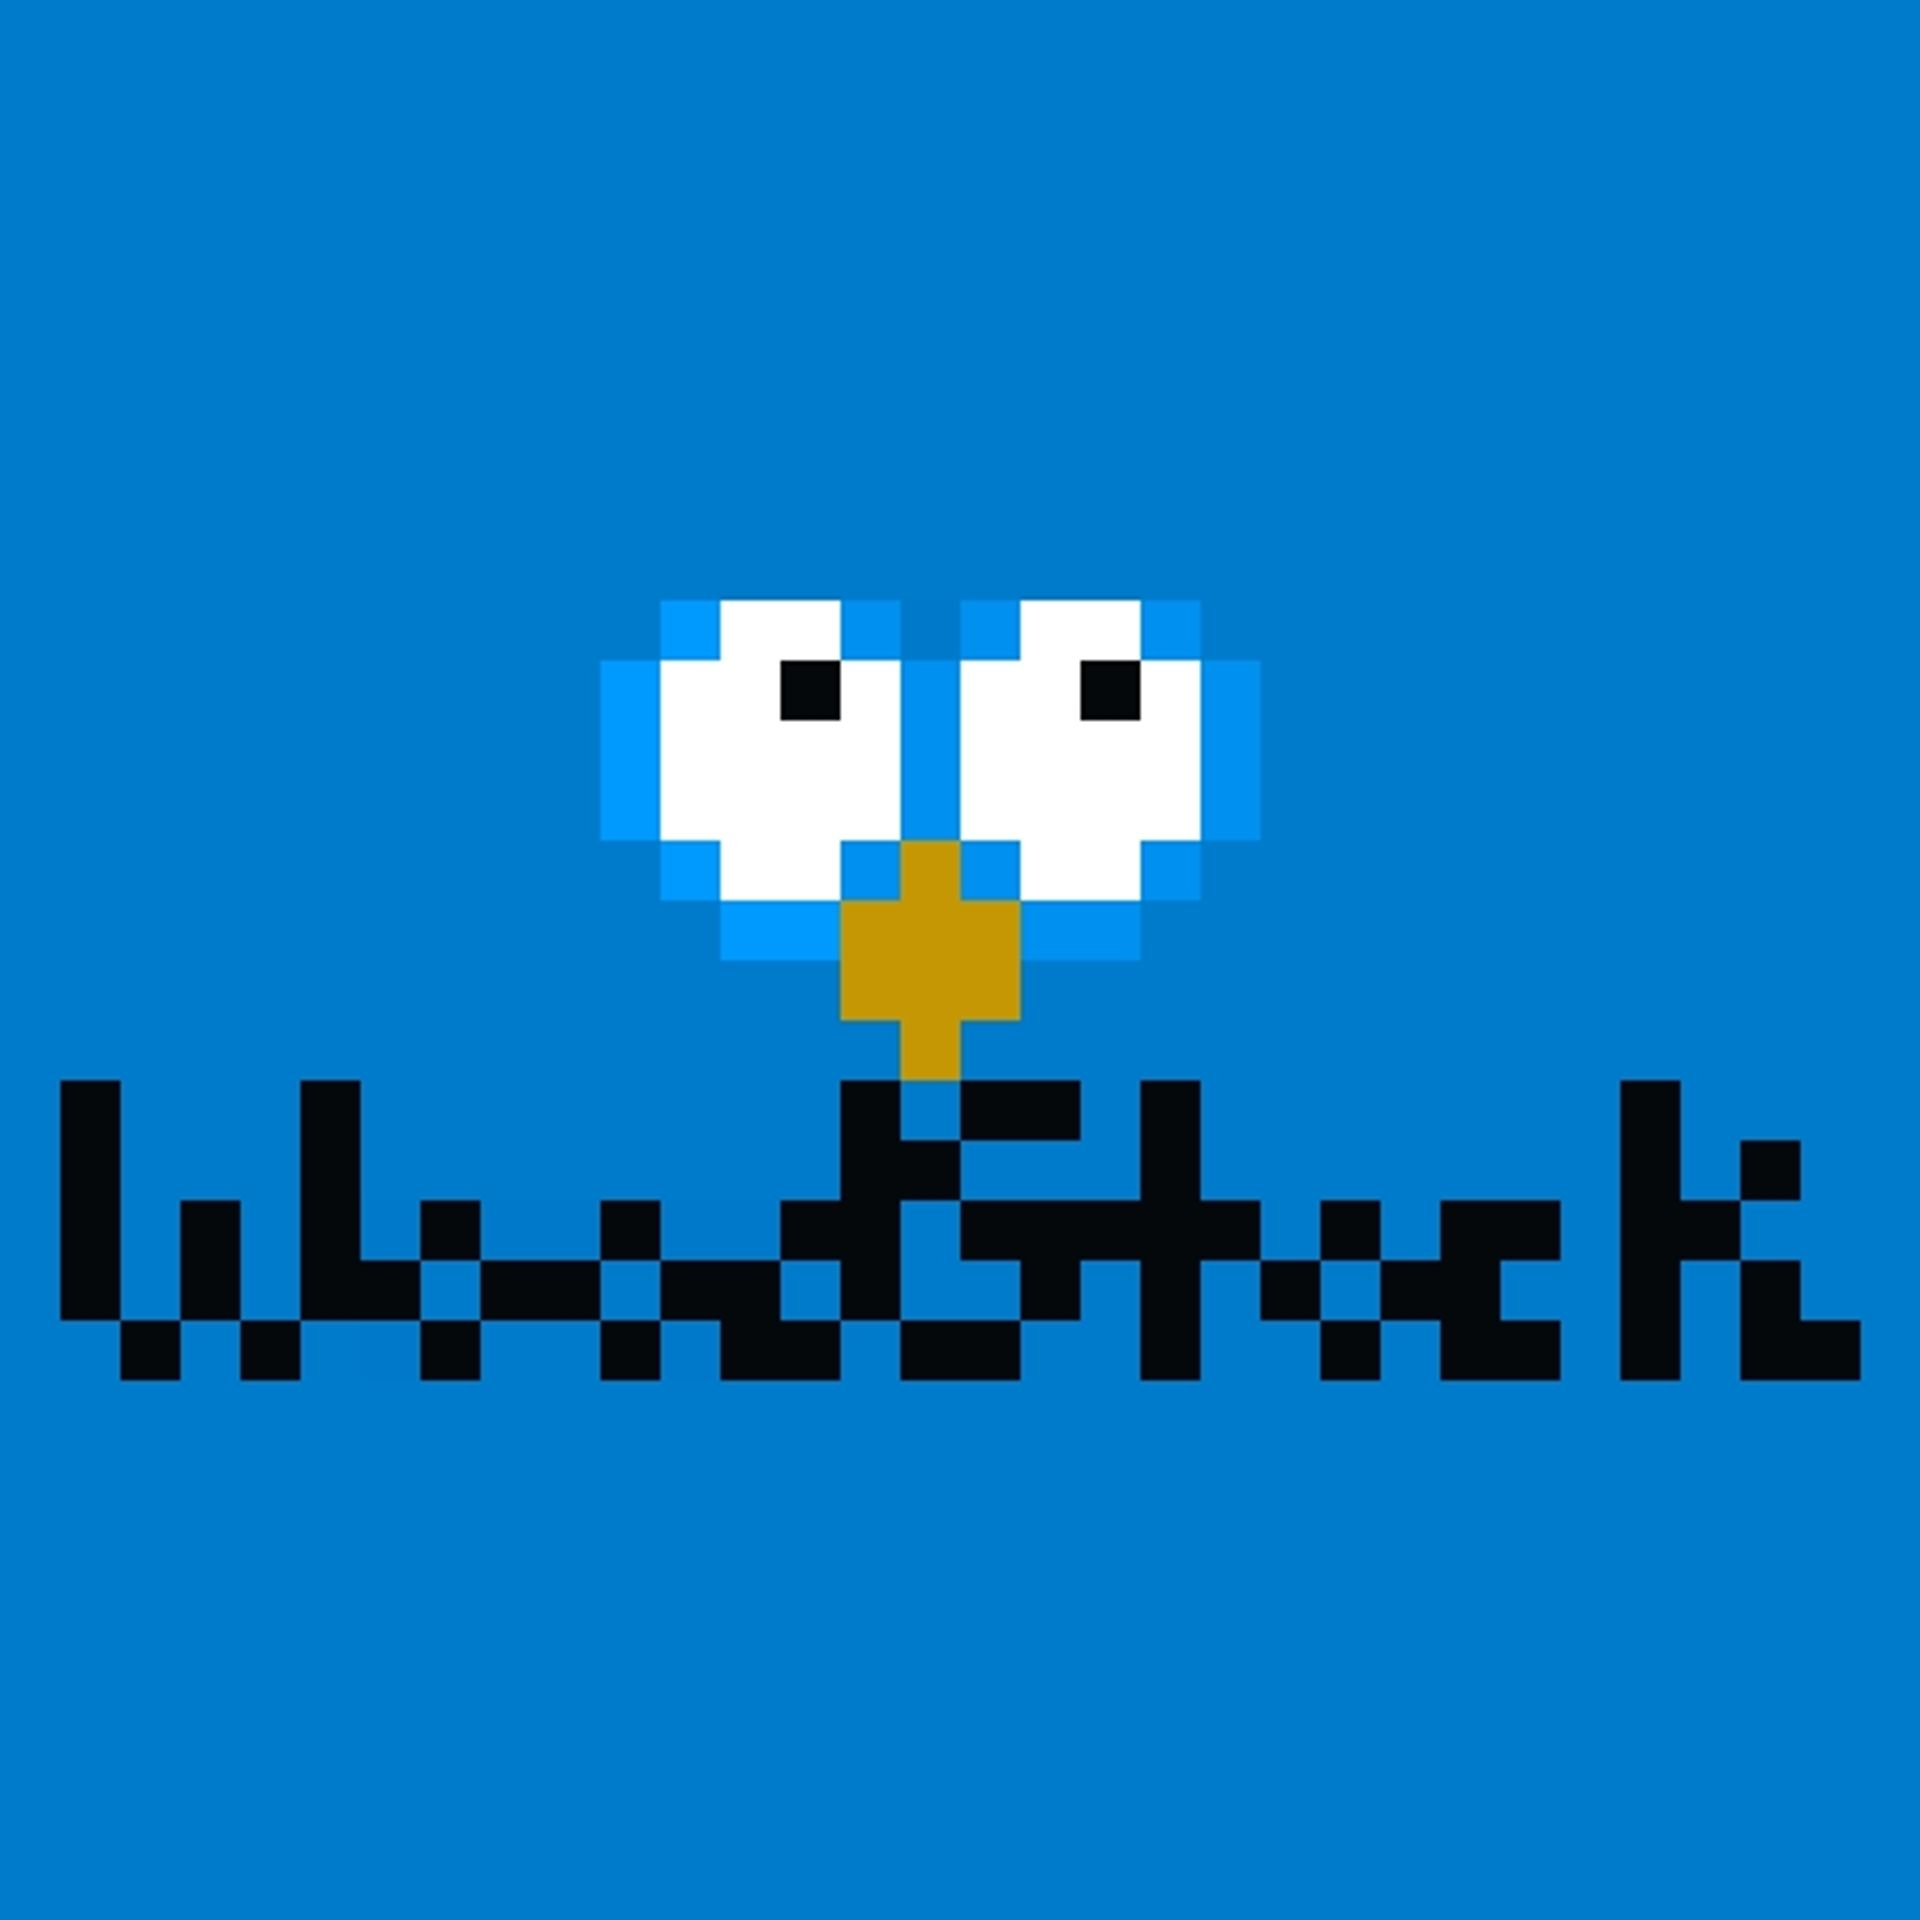 Woodstock Production provides affordable windows 64 bit games.